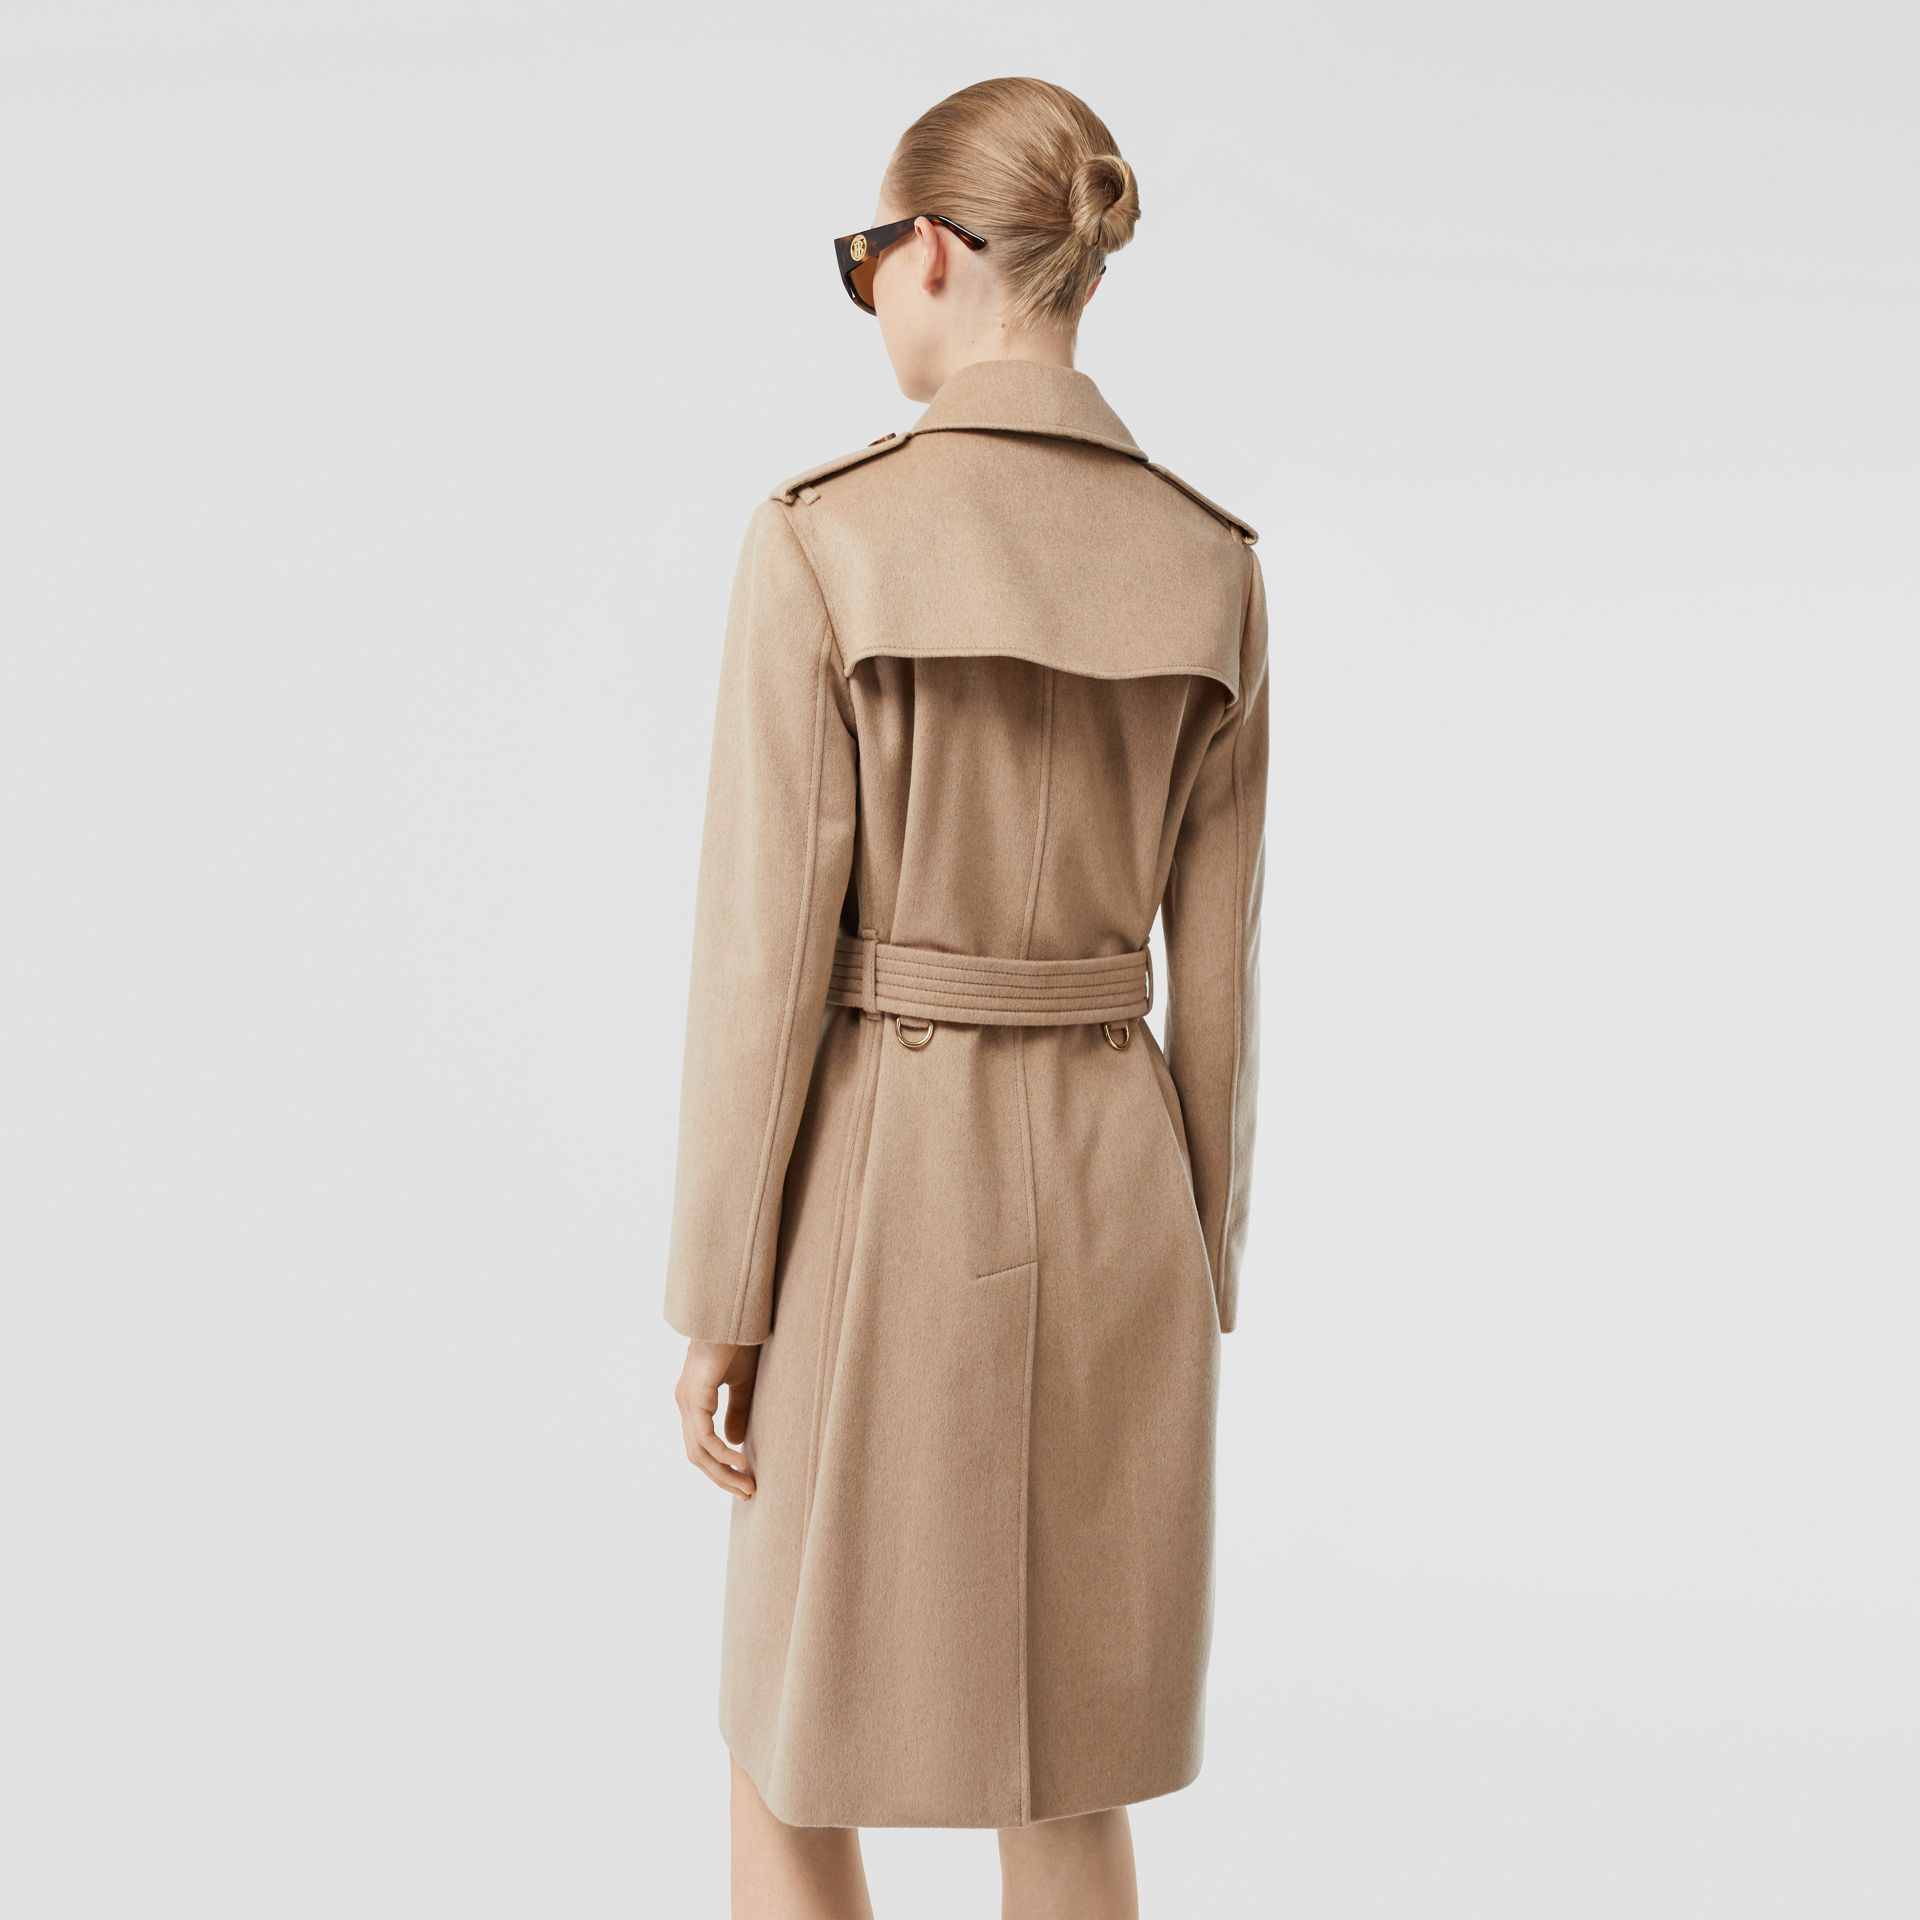 Cashmere Trench Coat in Camel - Women | Burberry Australia - gallery image 2